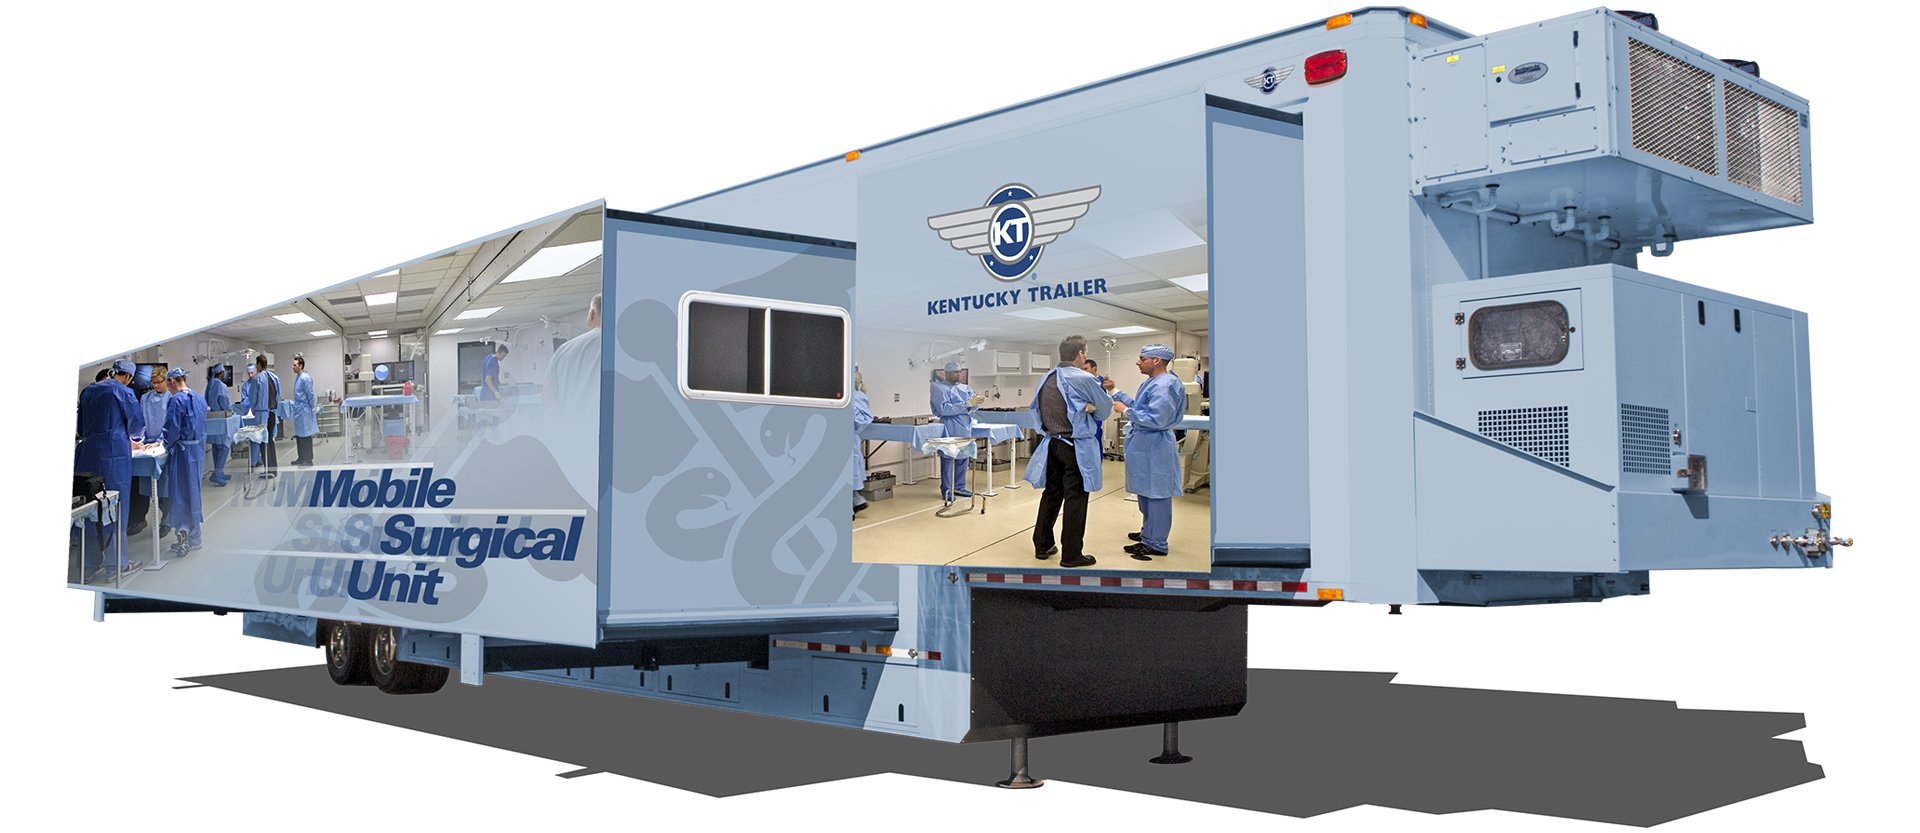 Mobile Surgical Unit